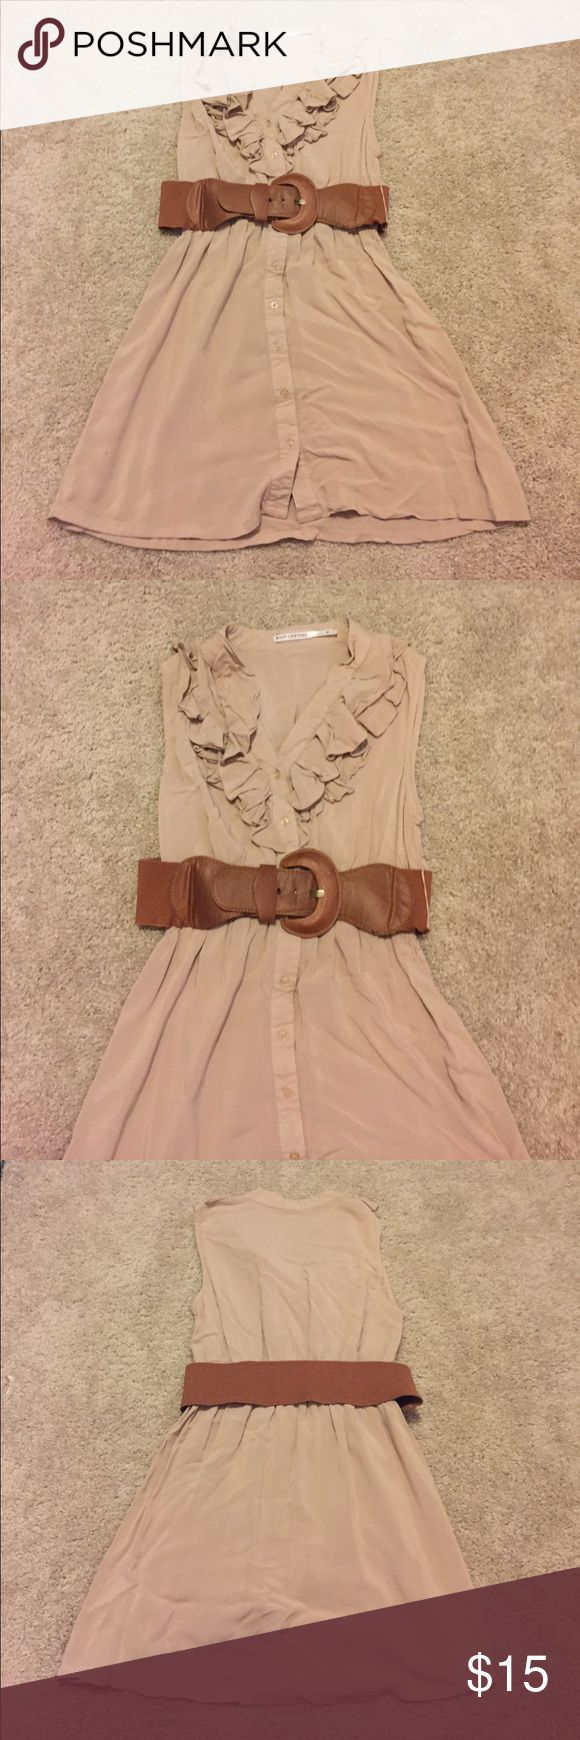 Tan summer dress super cute light summer or fall dress , can be worn with our without belt. 100% rayon Body Central Dresses